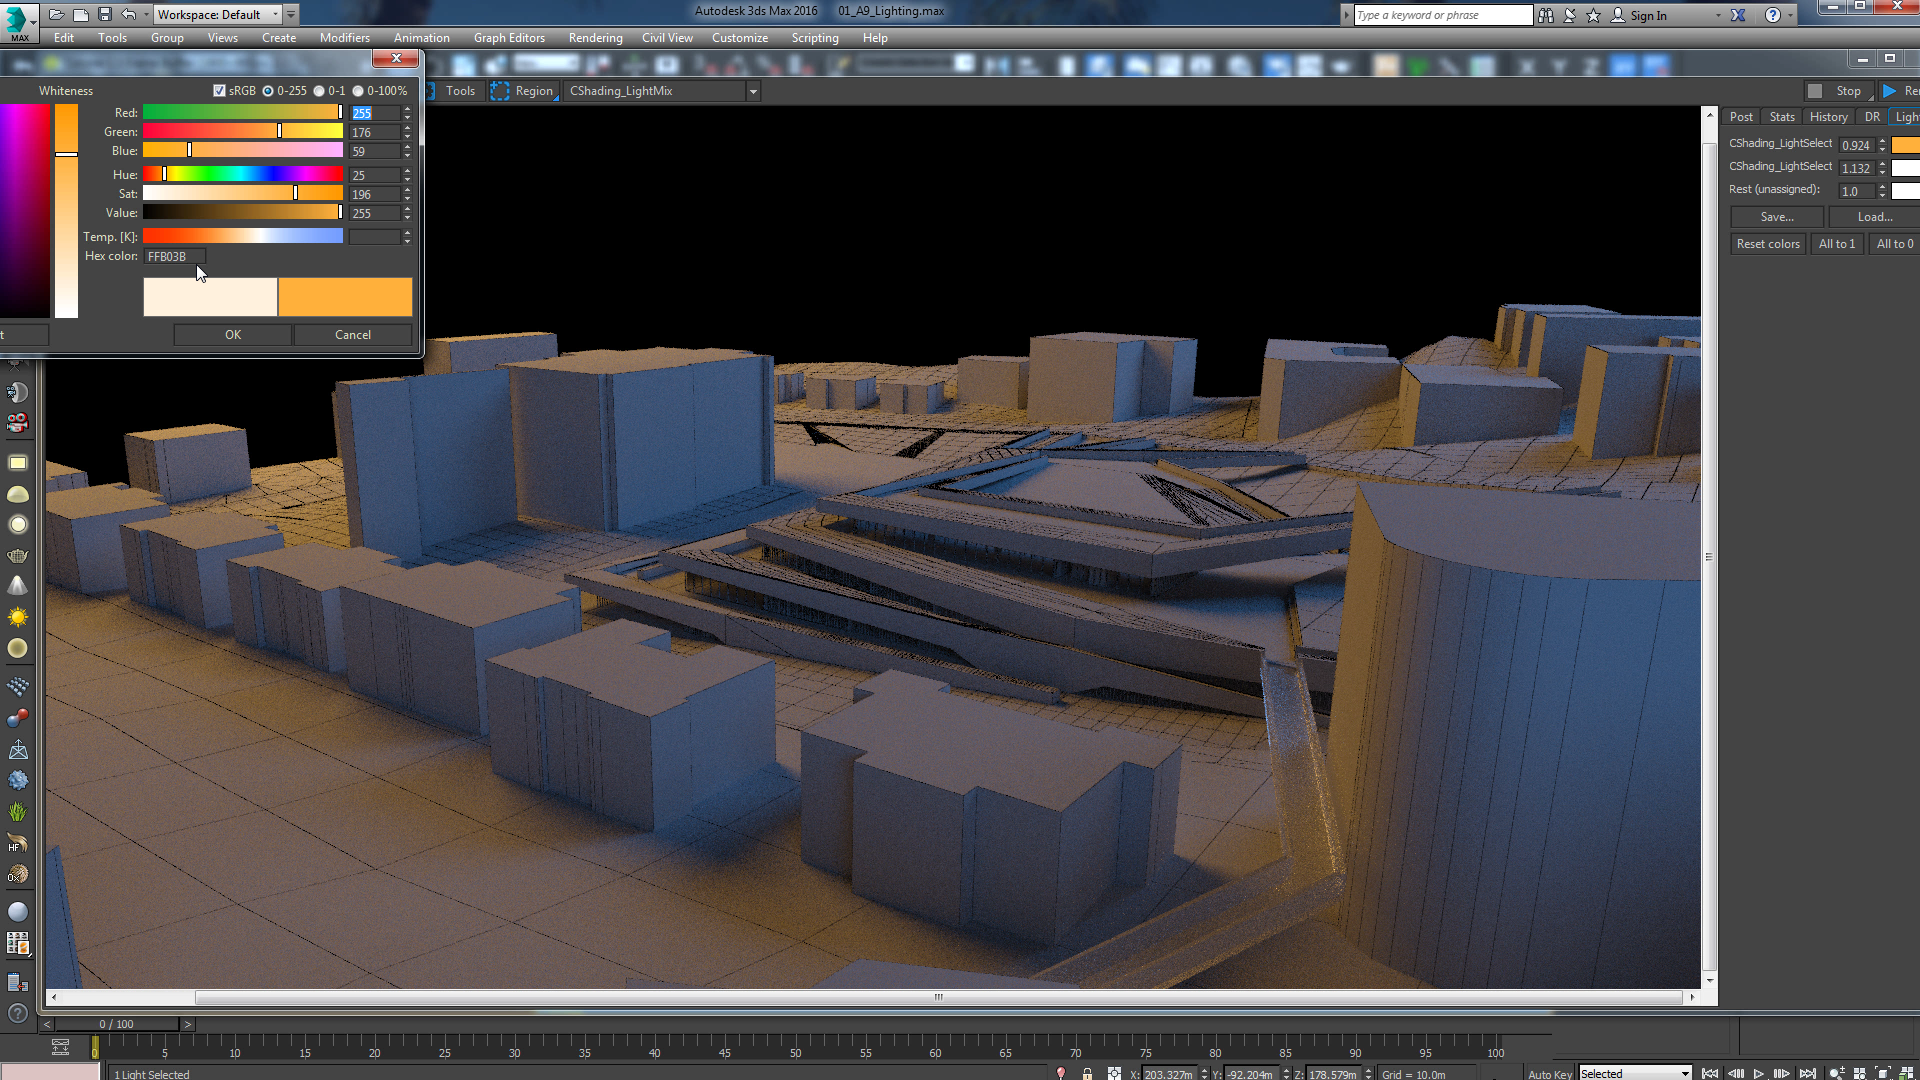 Experimenting in Corona Renderer with the lighmix feature